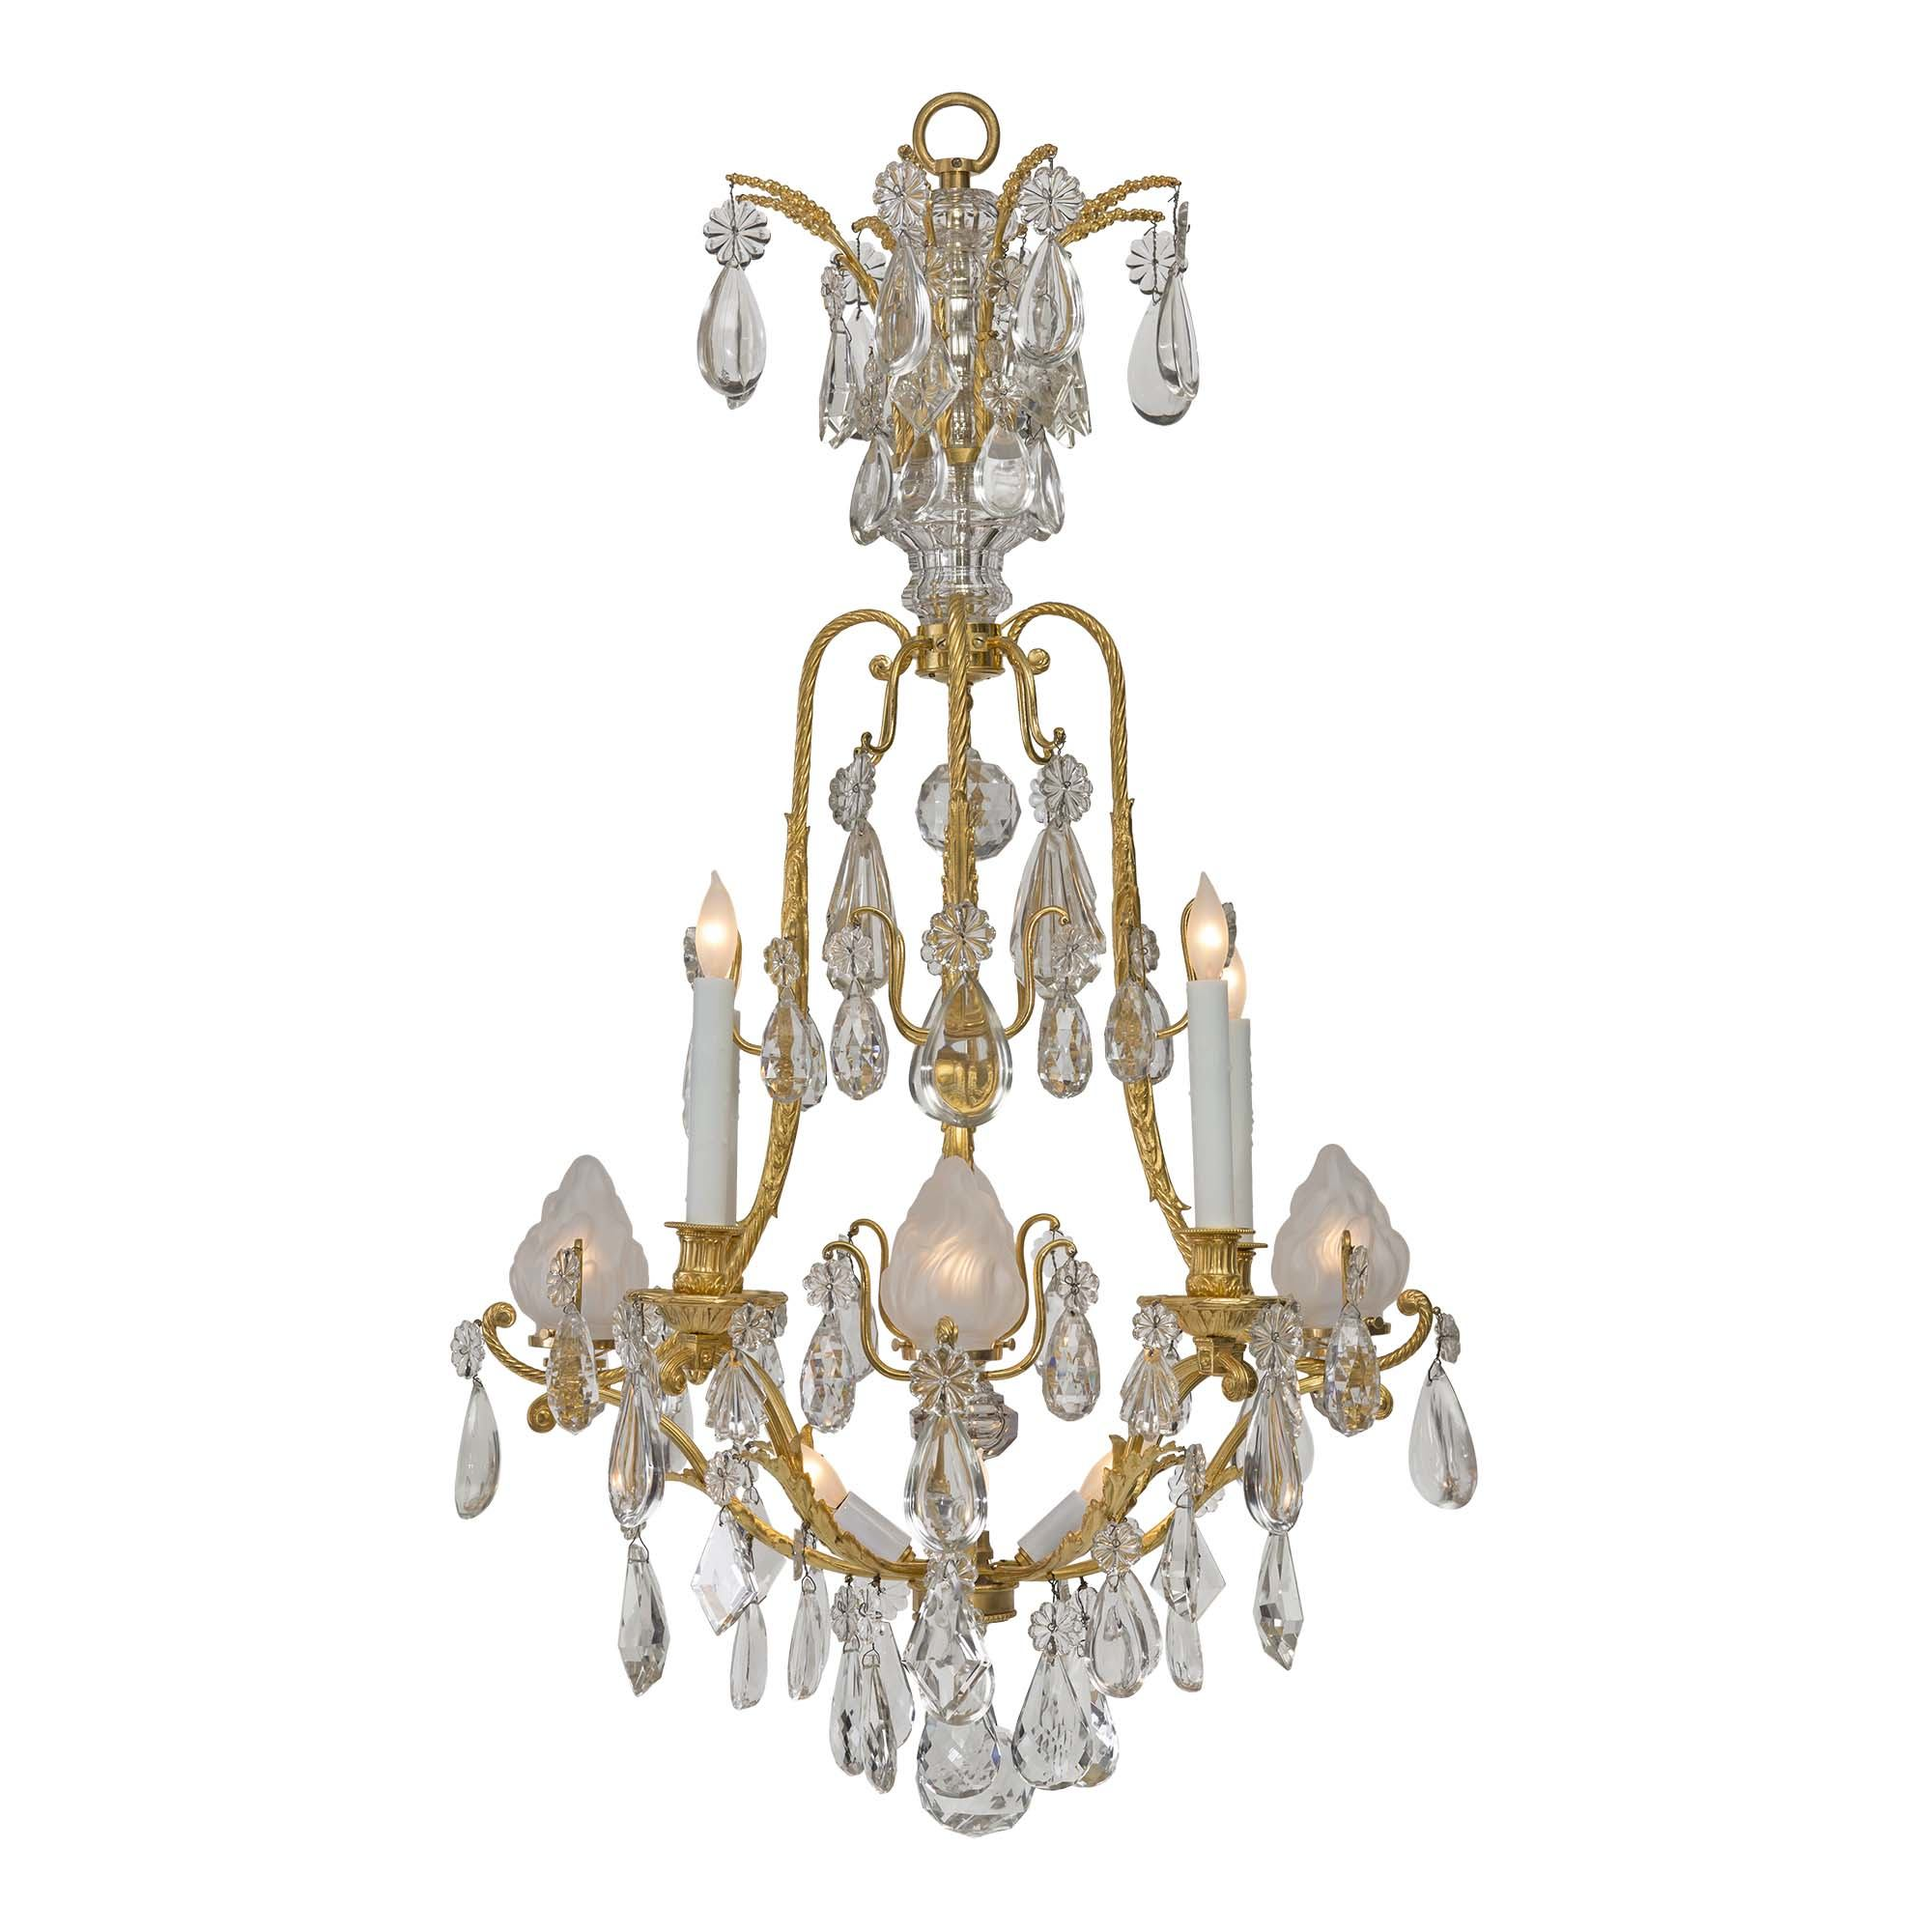 French 19th century louis xvi st belle epoque period ormolu and 90531web aloadofball Image collections